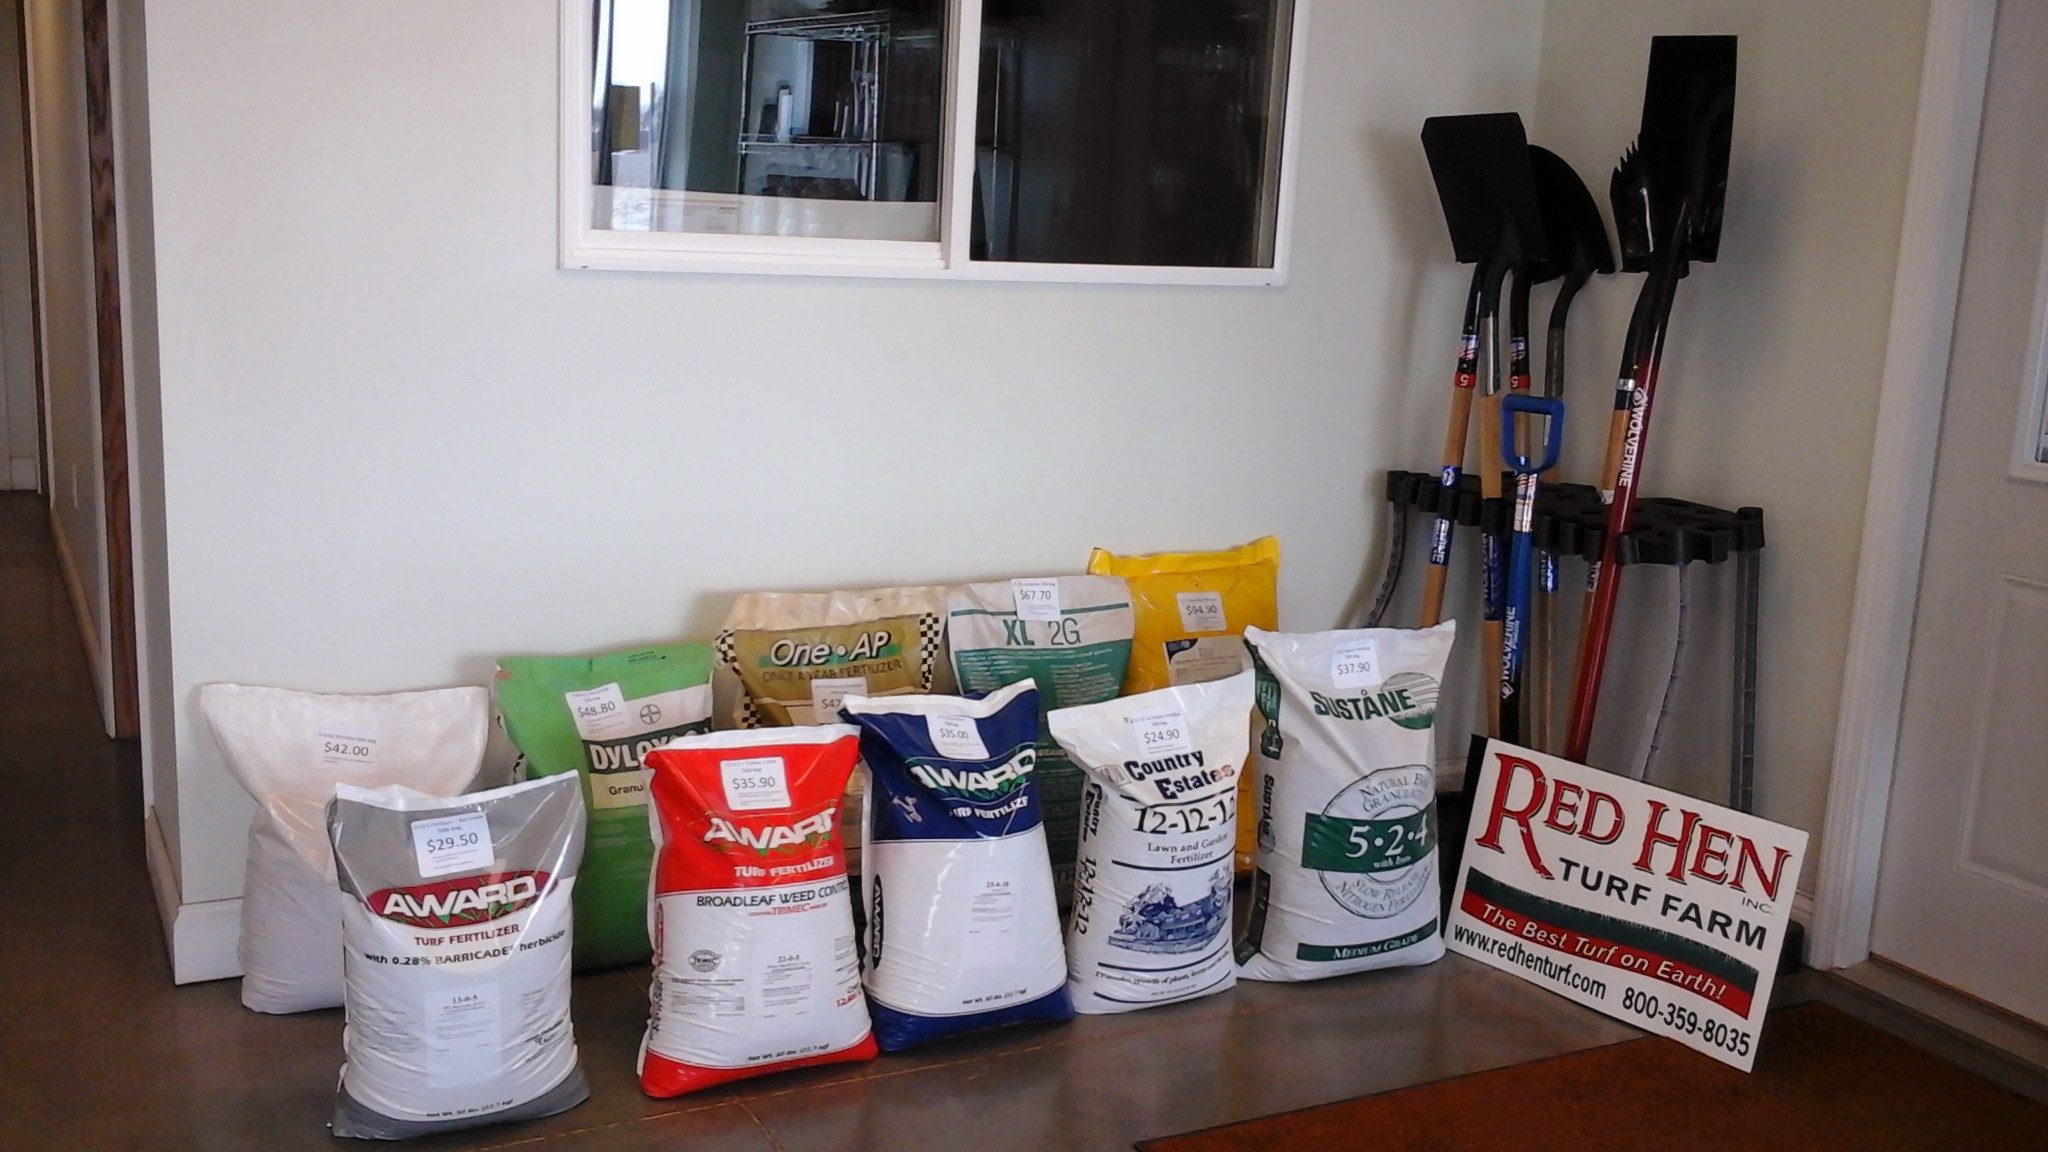 Photo of Red Hen - Fertilizer and Tools_03-11-16